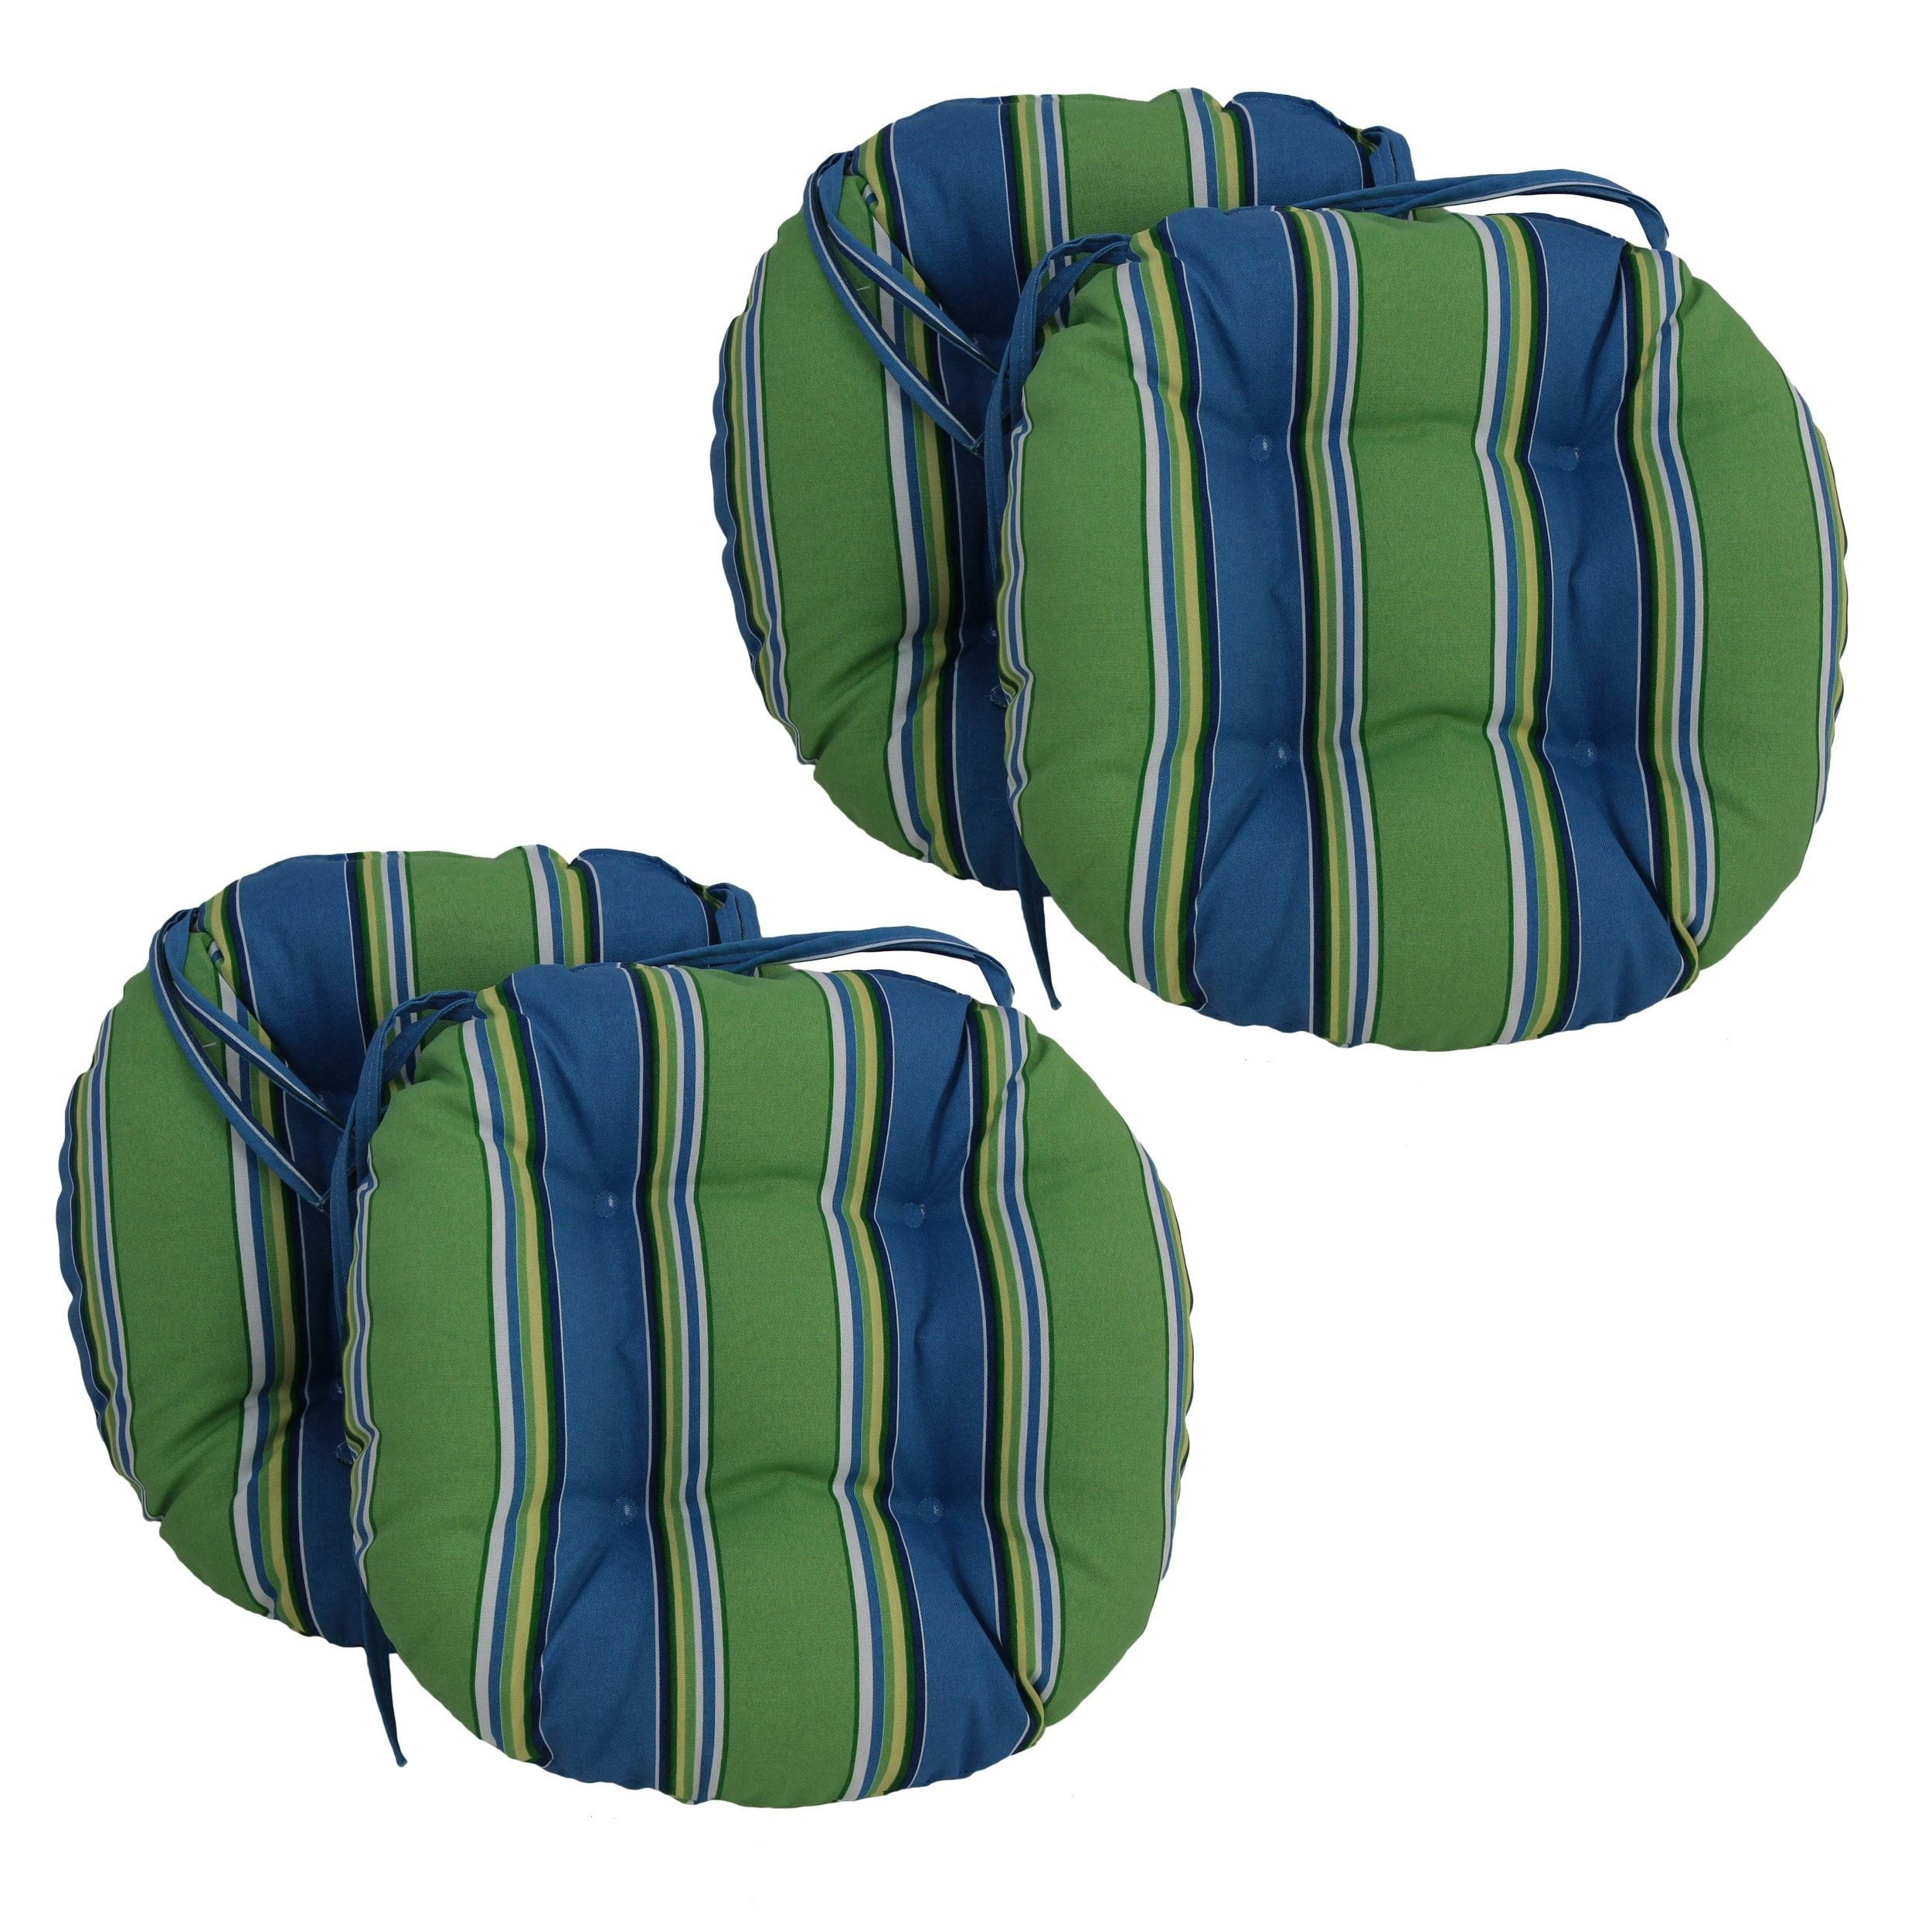 Blazing Needles 16 X 16 Inch Round Outdoor Chair Cushions Set Of 4